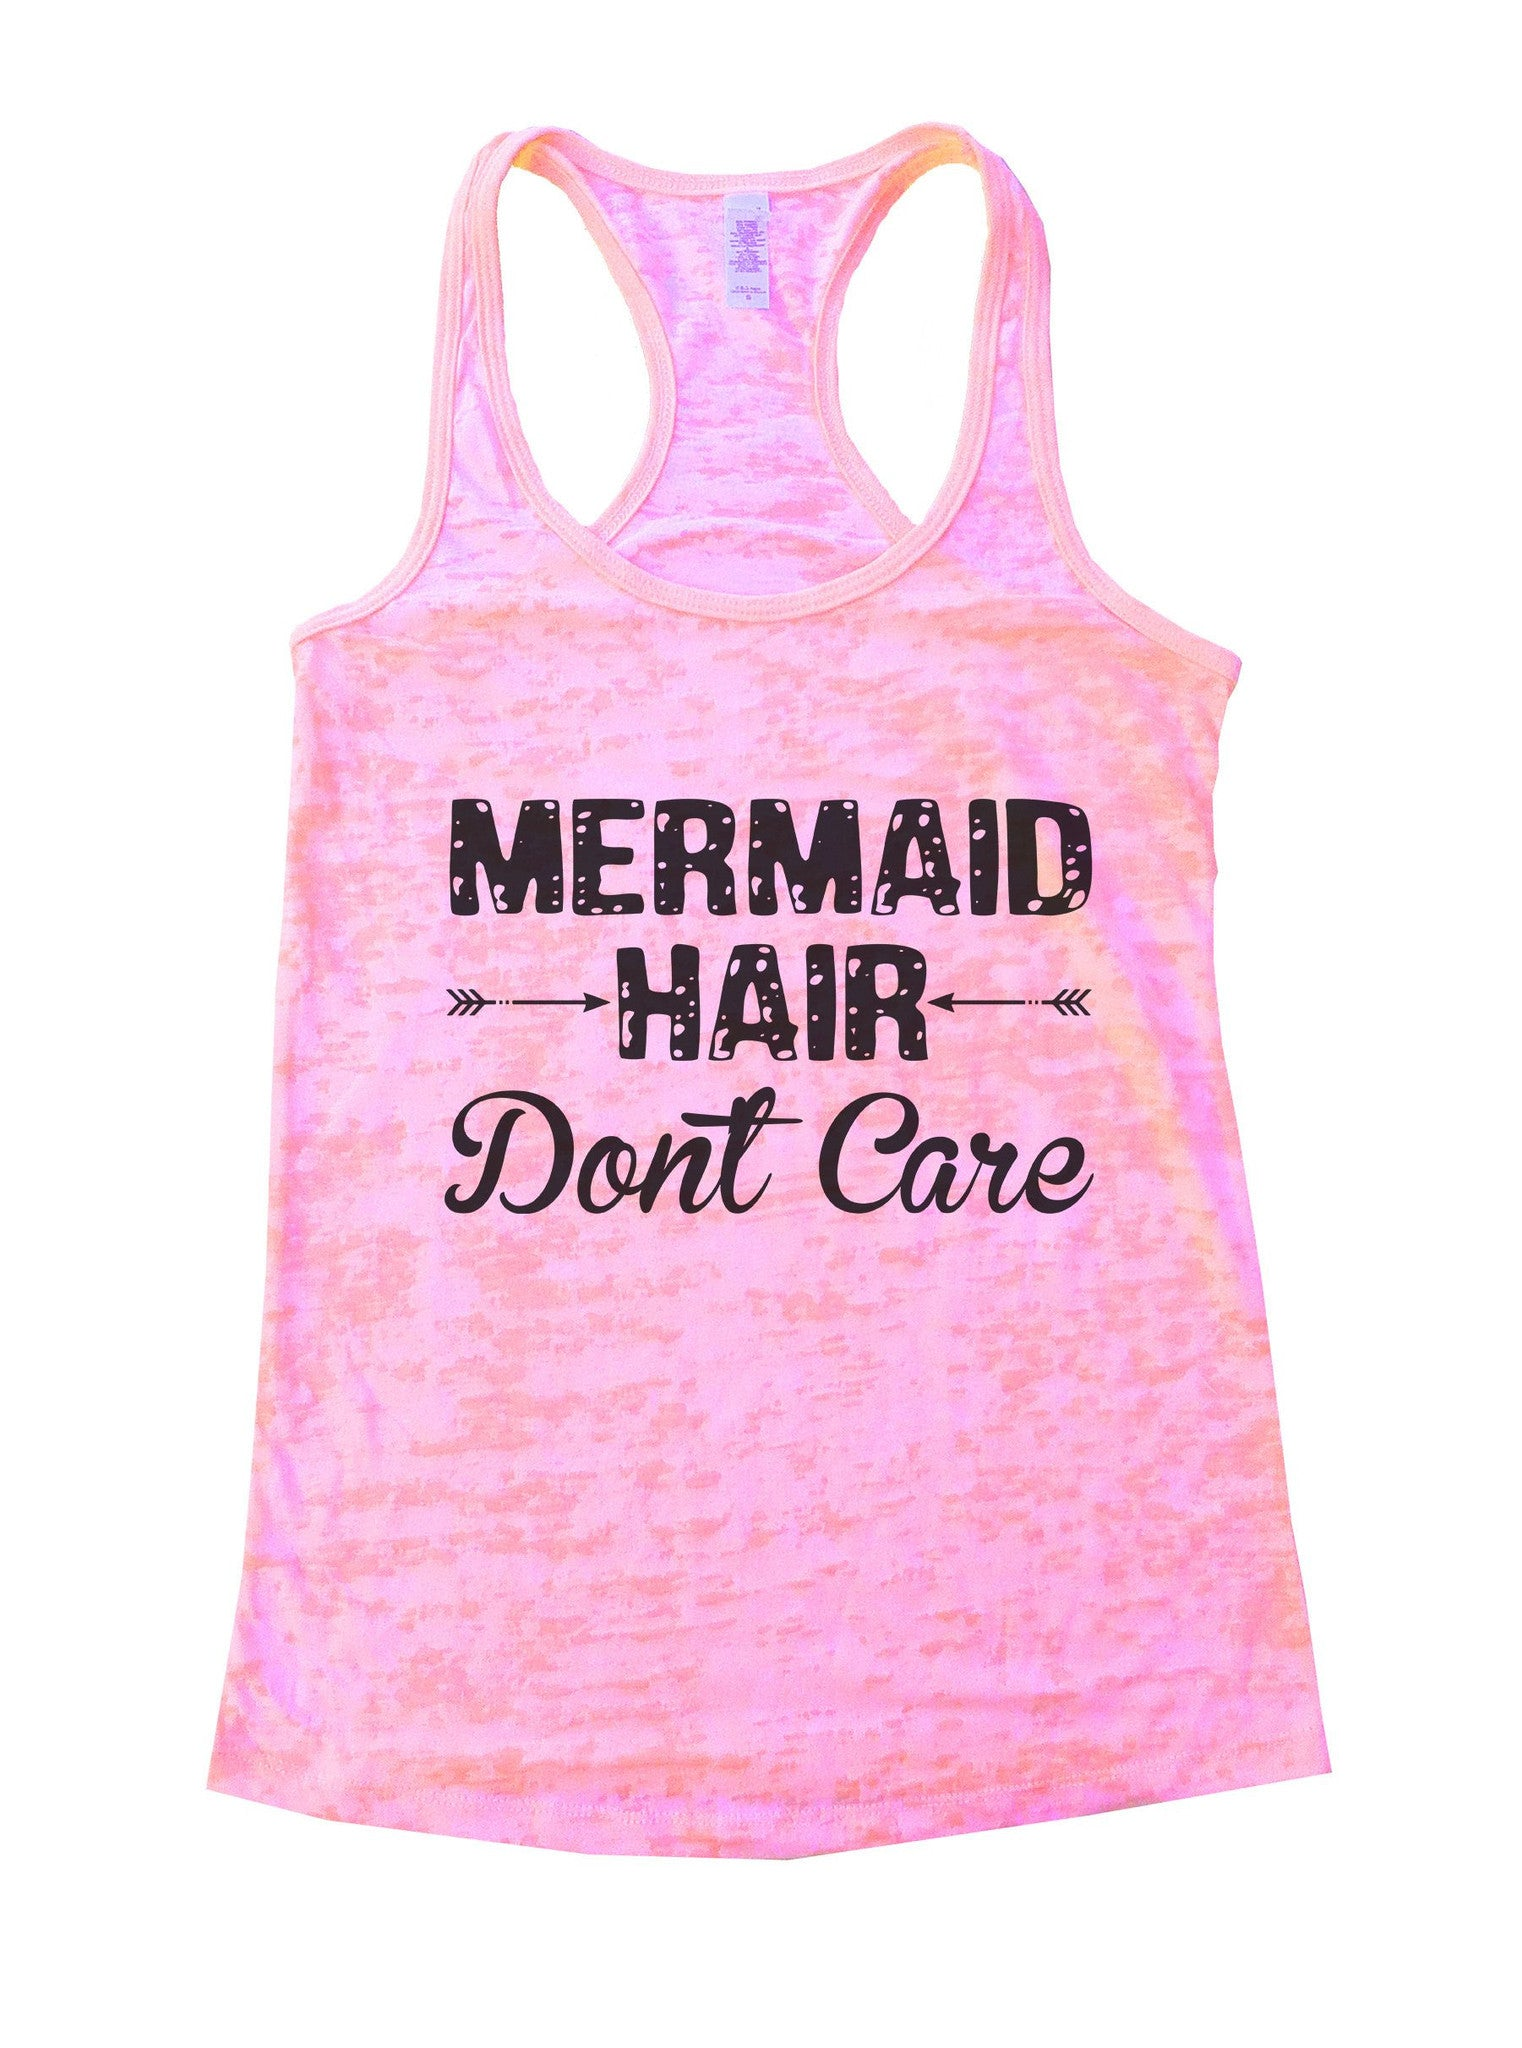 Mermaid Hair Dont Care Burnout Tank Top By BurnoutTankTops.com - 833 - Funny Shirts Tank Tops Burnouts and Triblends  - 1